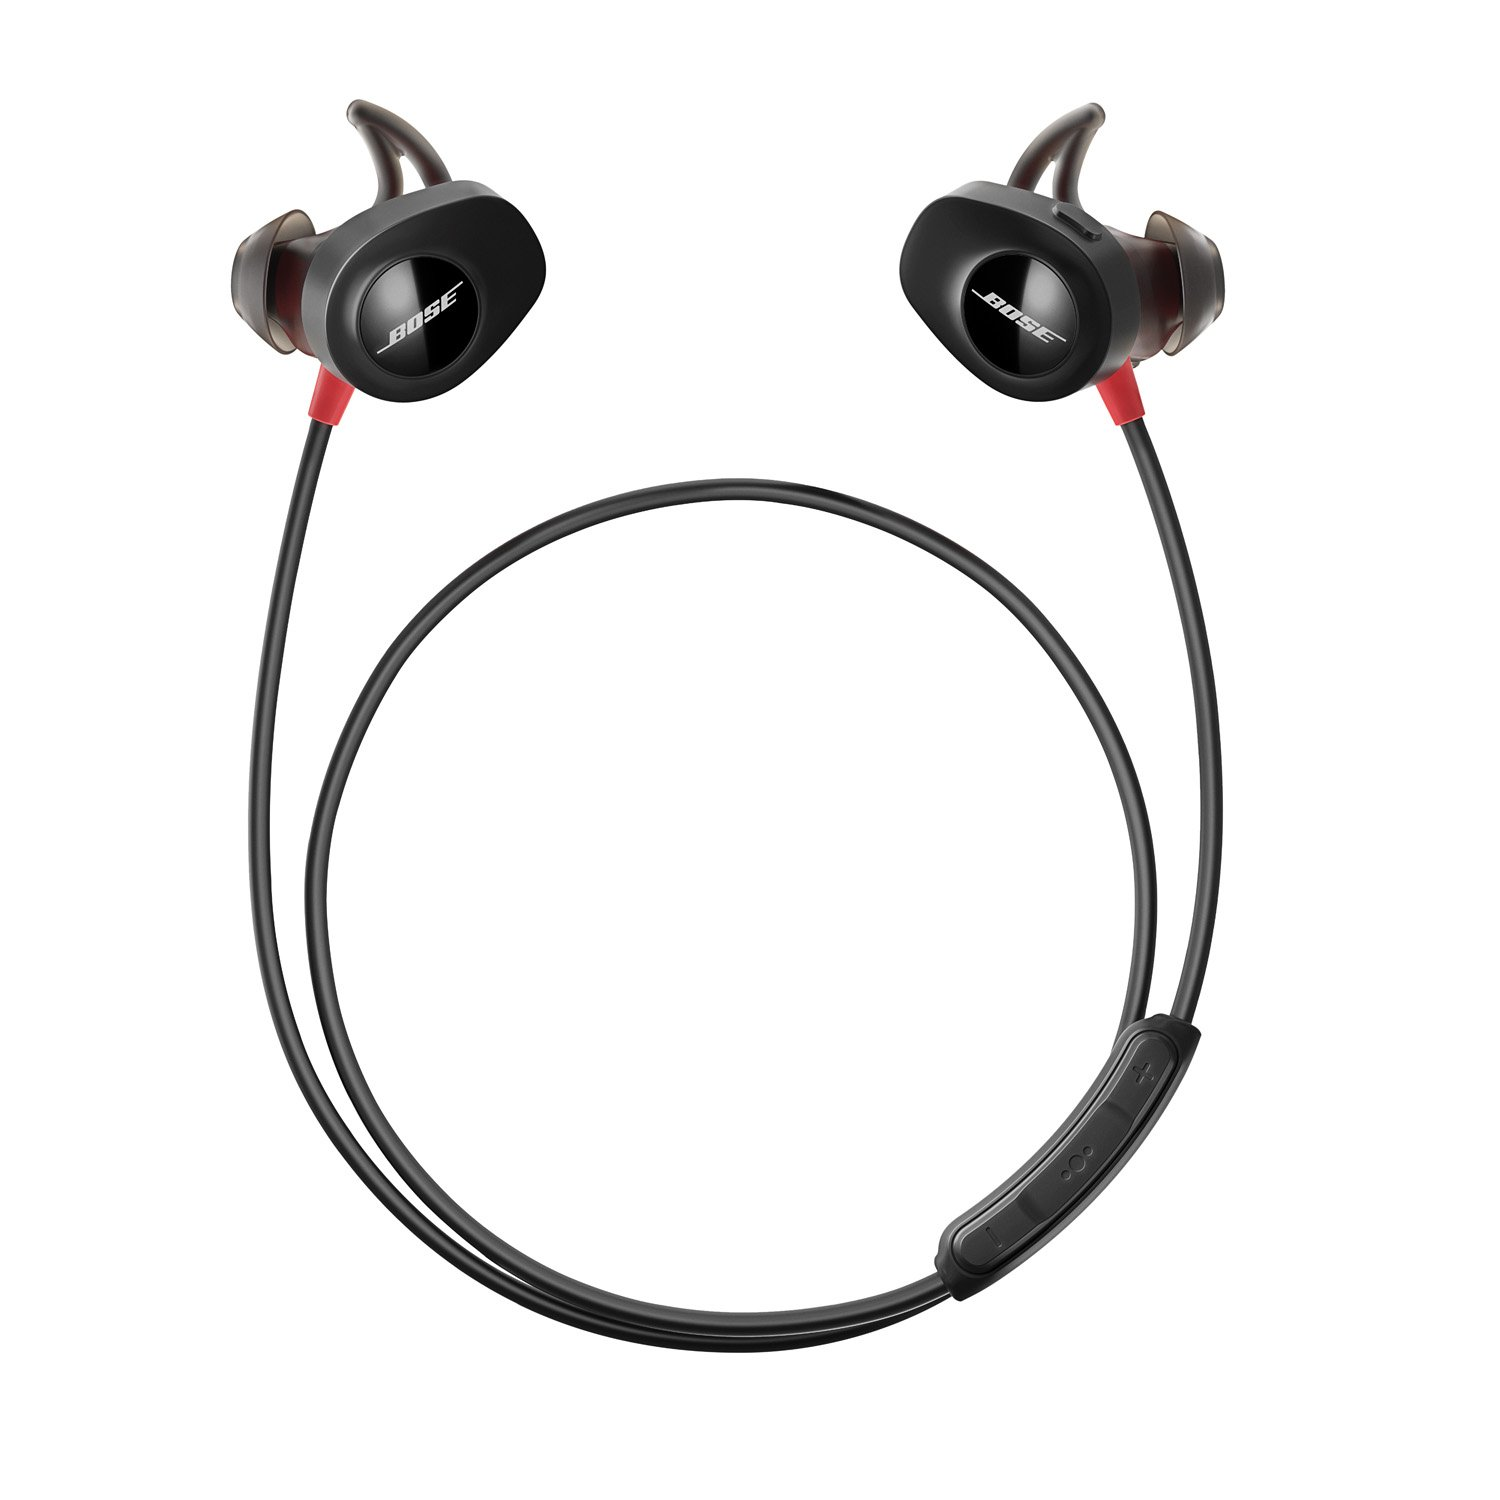 Bose First Heart Rating Monitoring earphones